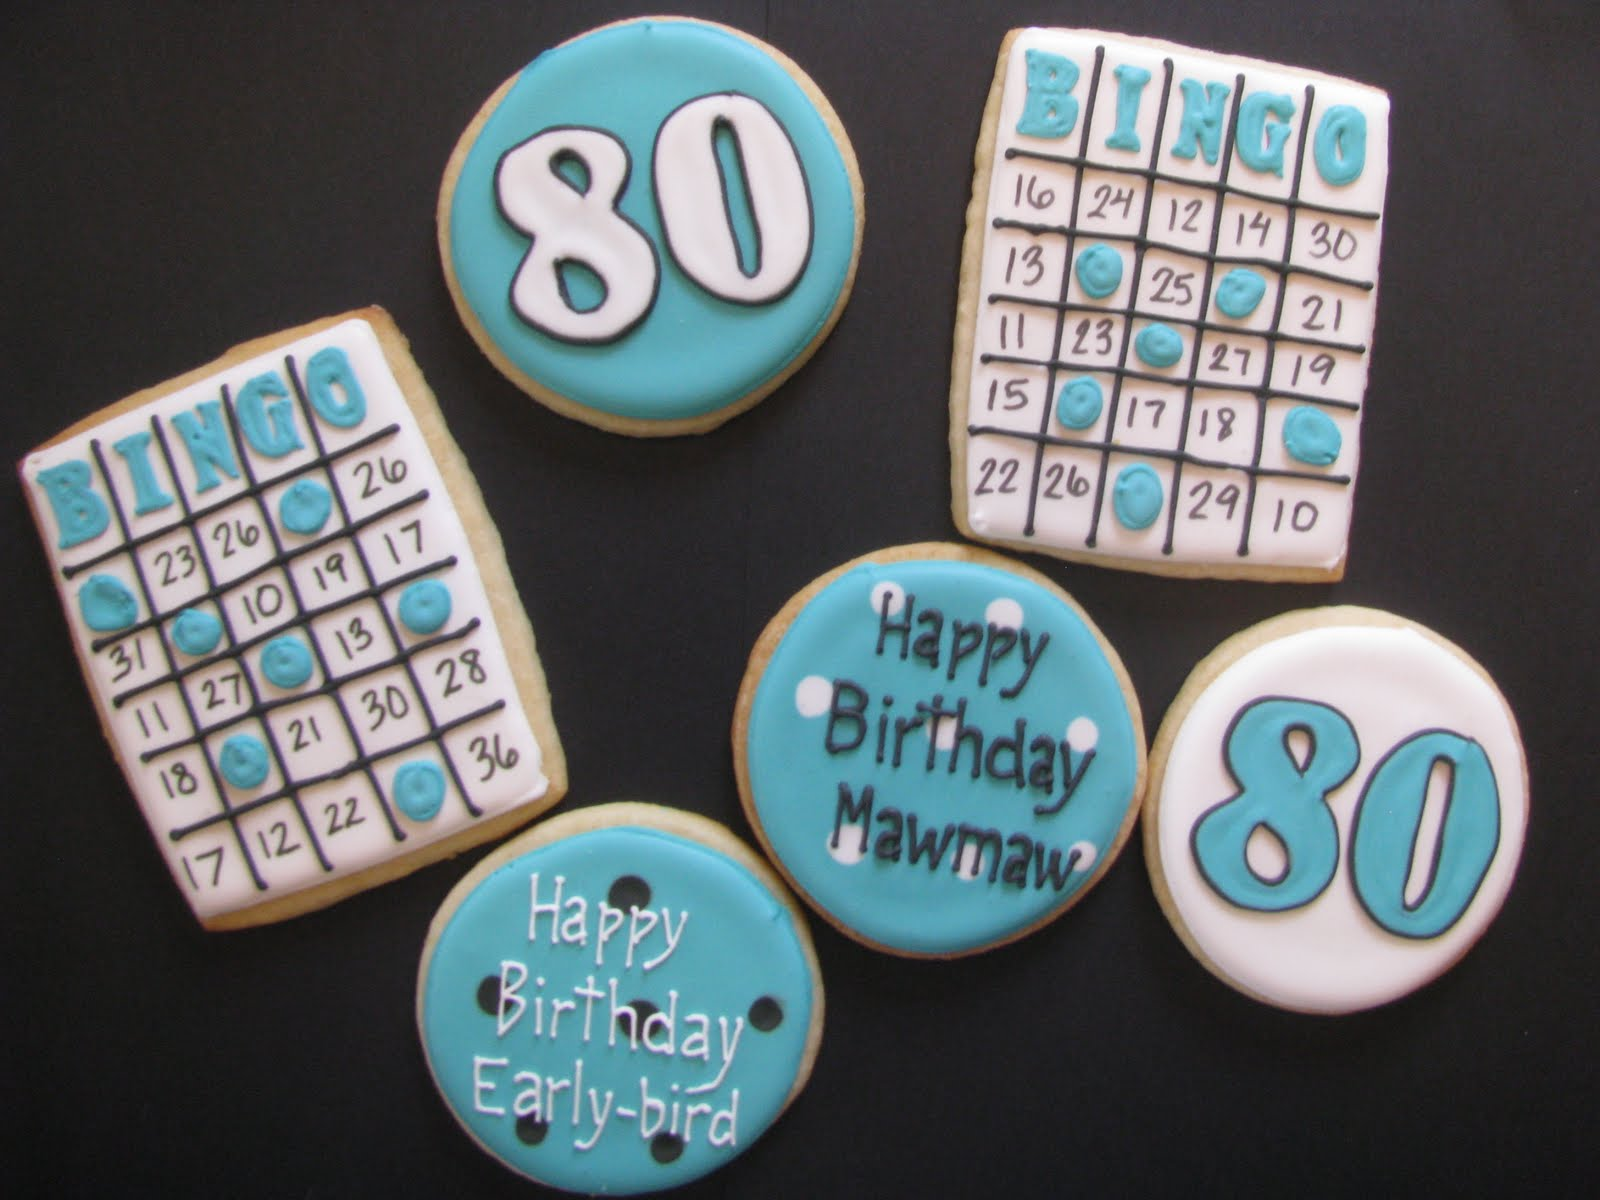 All About The Cookies Bingo